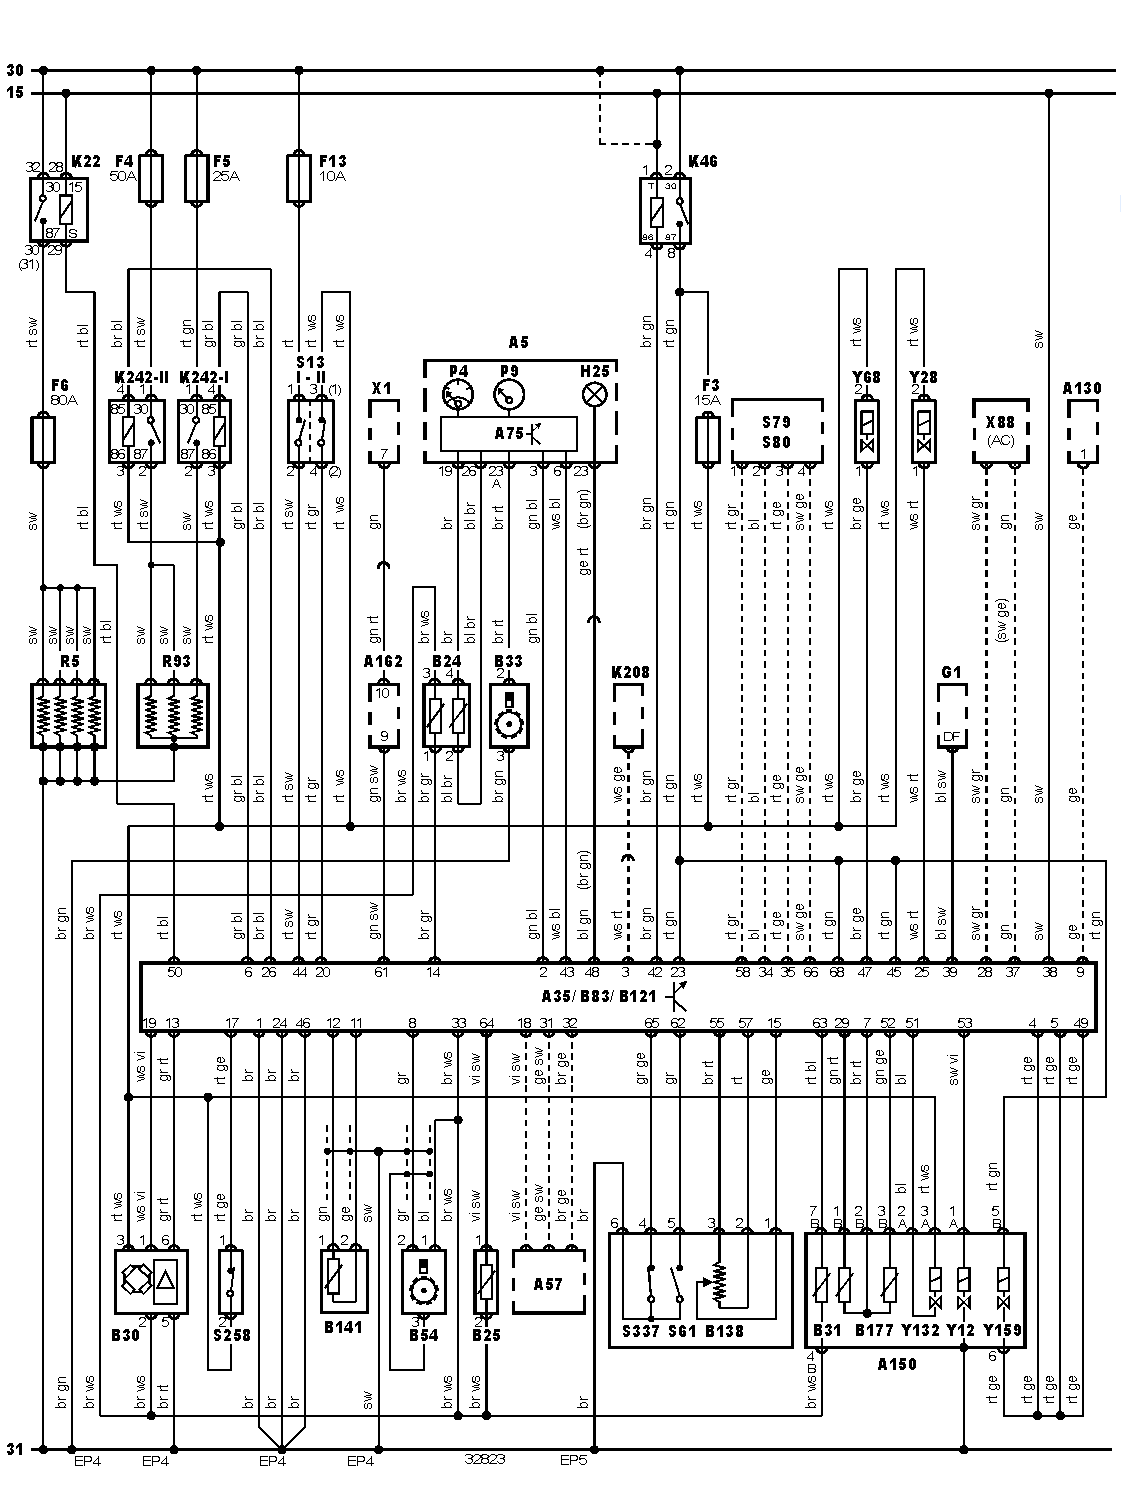 Vw Tdi Wiring Diagram All Kind Of Diagrams 1994 Jetta Volkswagen Door Harness Free Engine Image For User Manual Download Chevy Truck